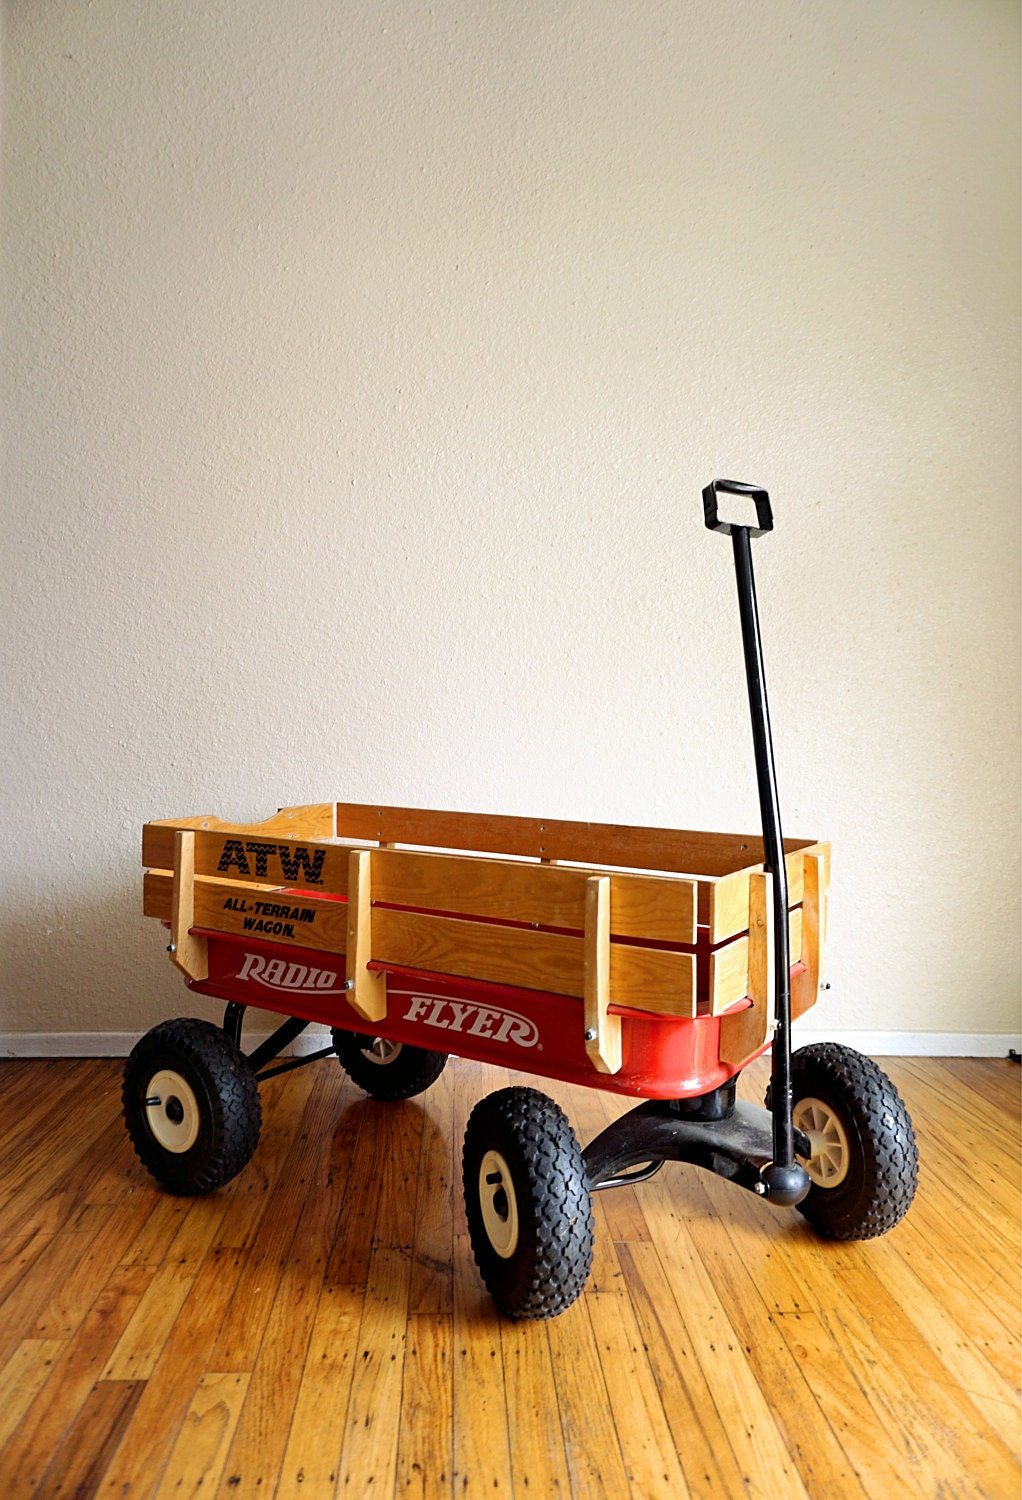 The ATW Radio Flyer